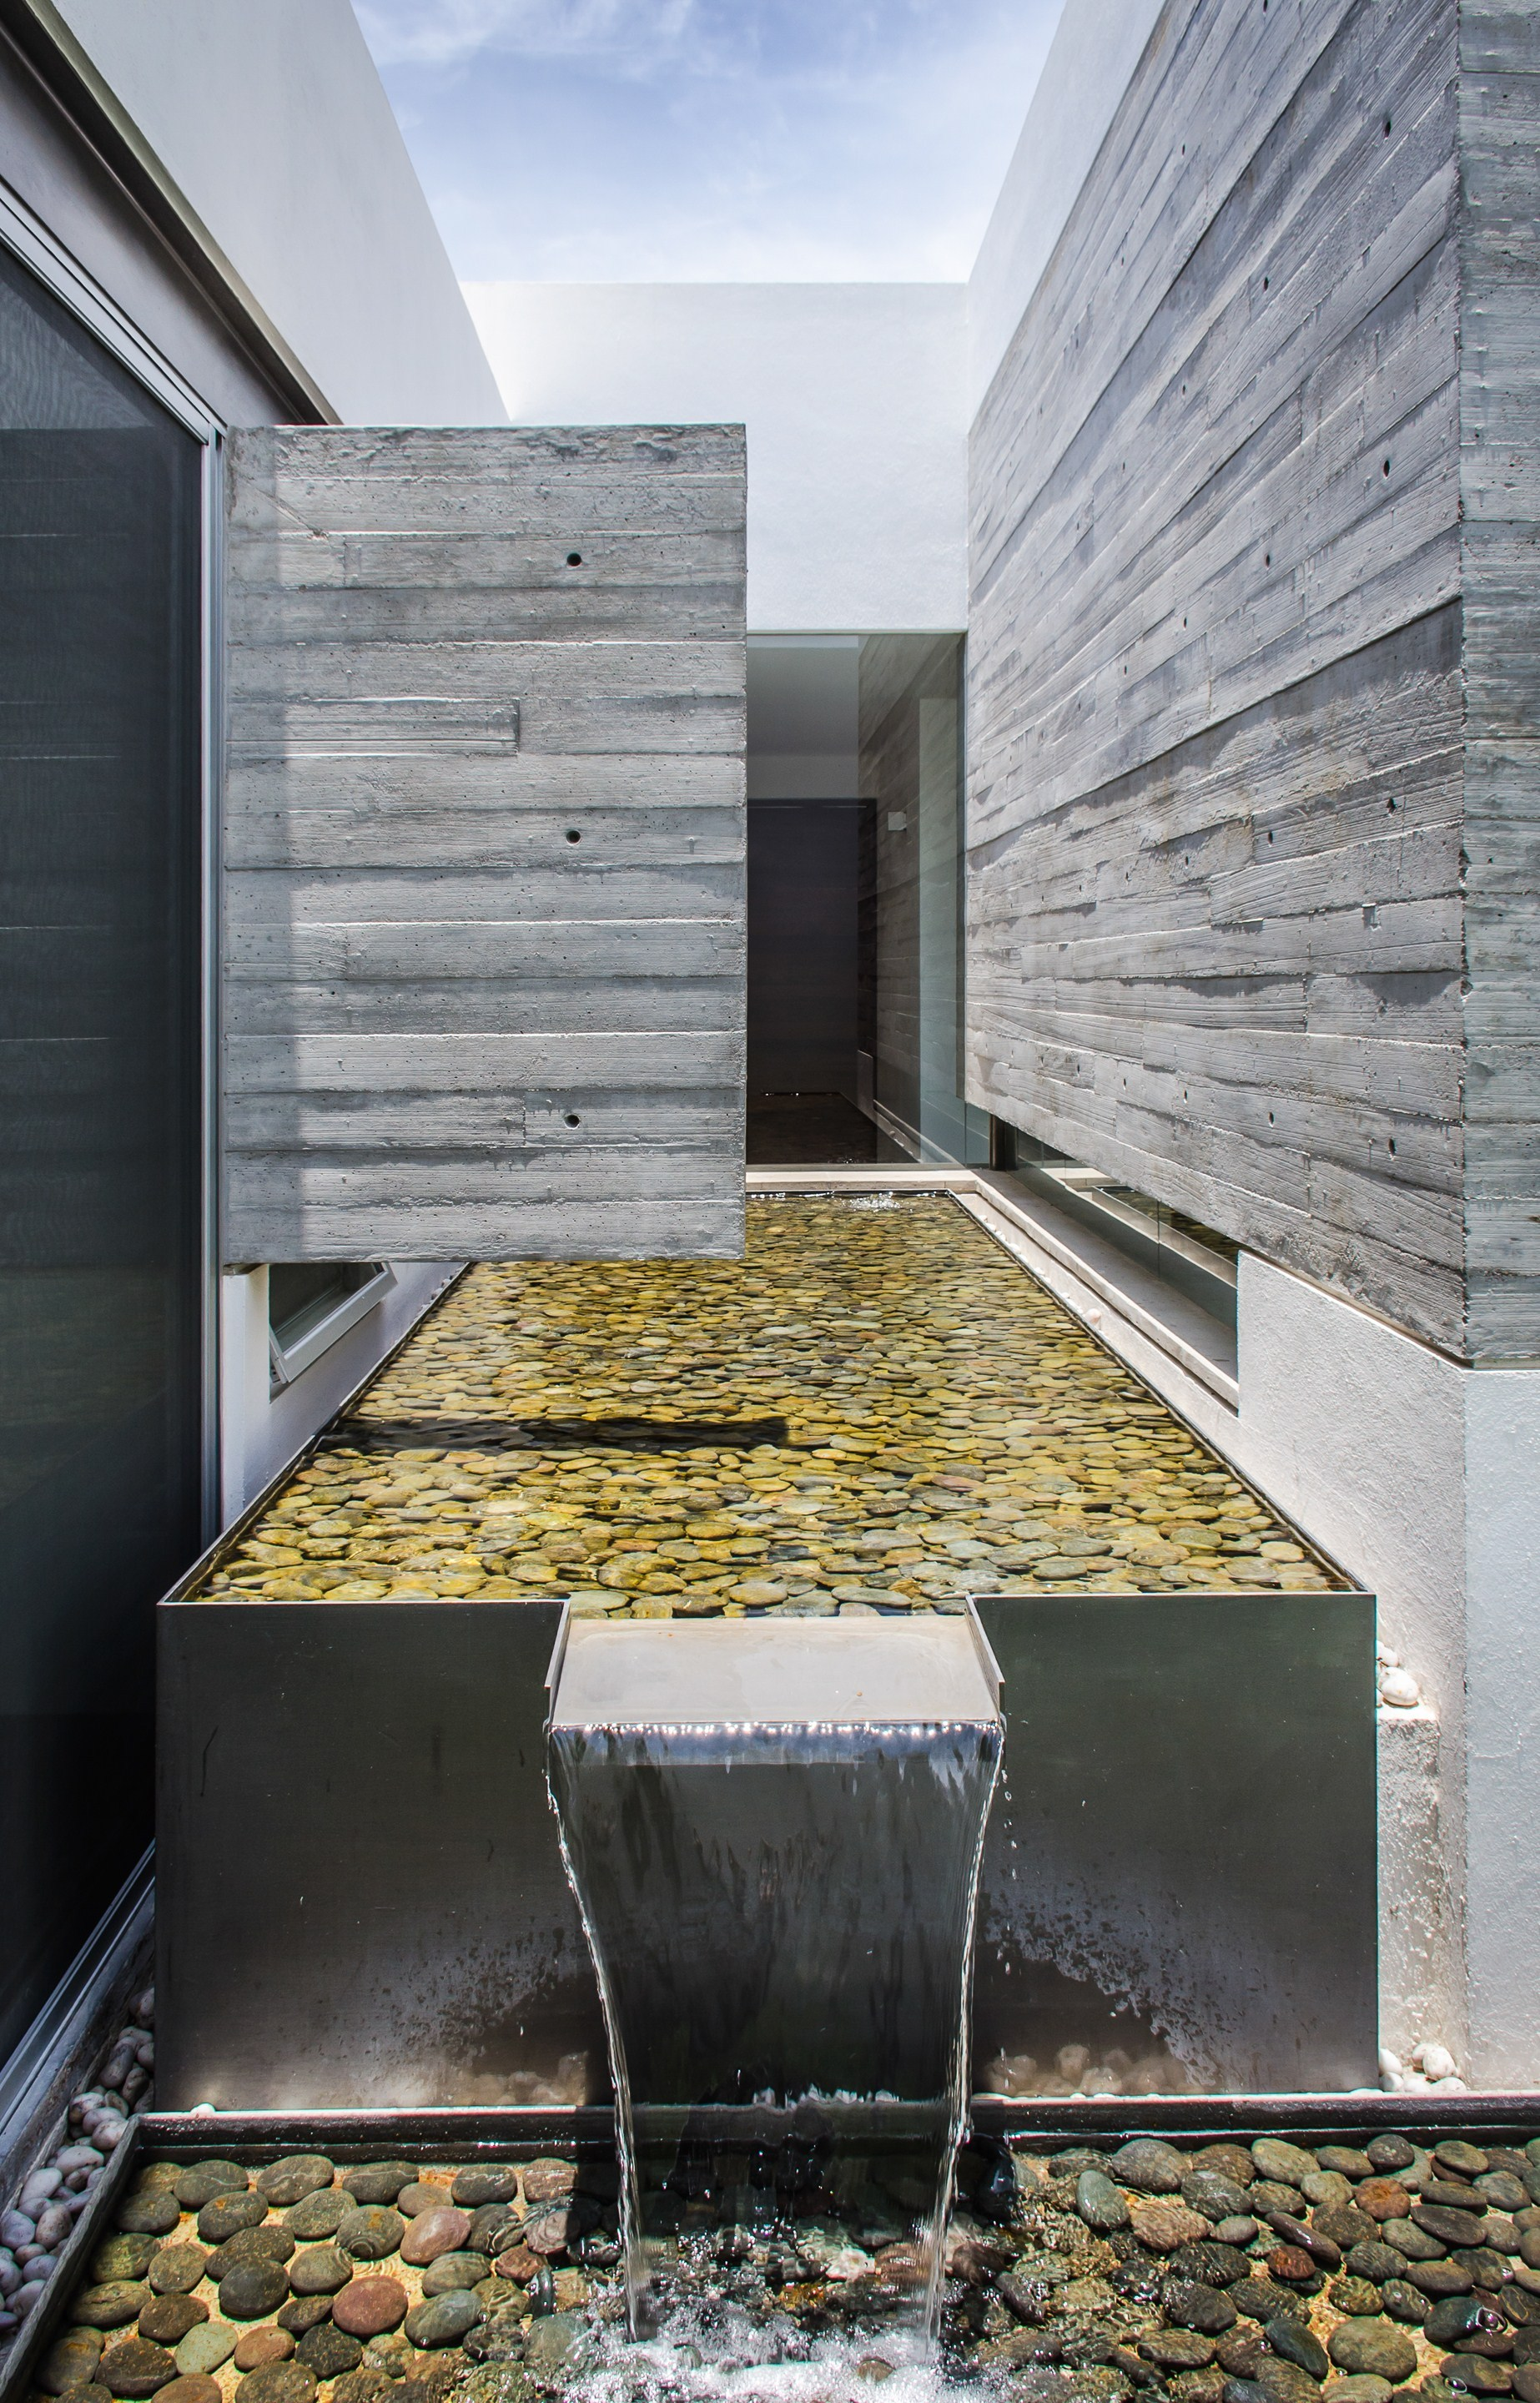 Gallery of t02 adi arquitectura y dise o interior 22 for Arquitectura y diseno interior